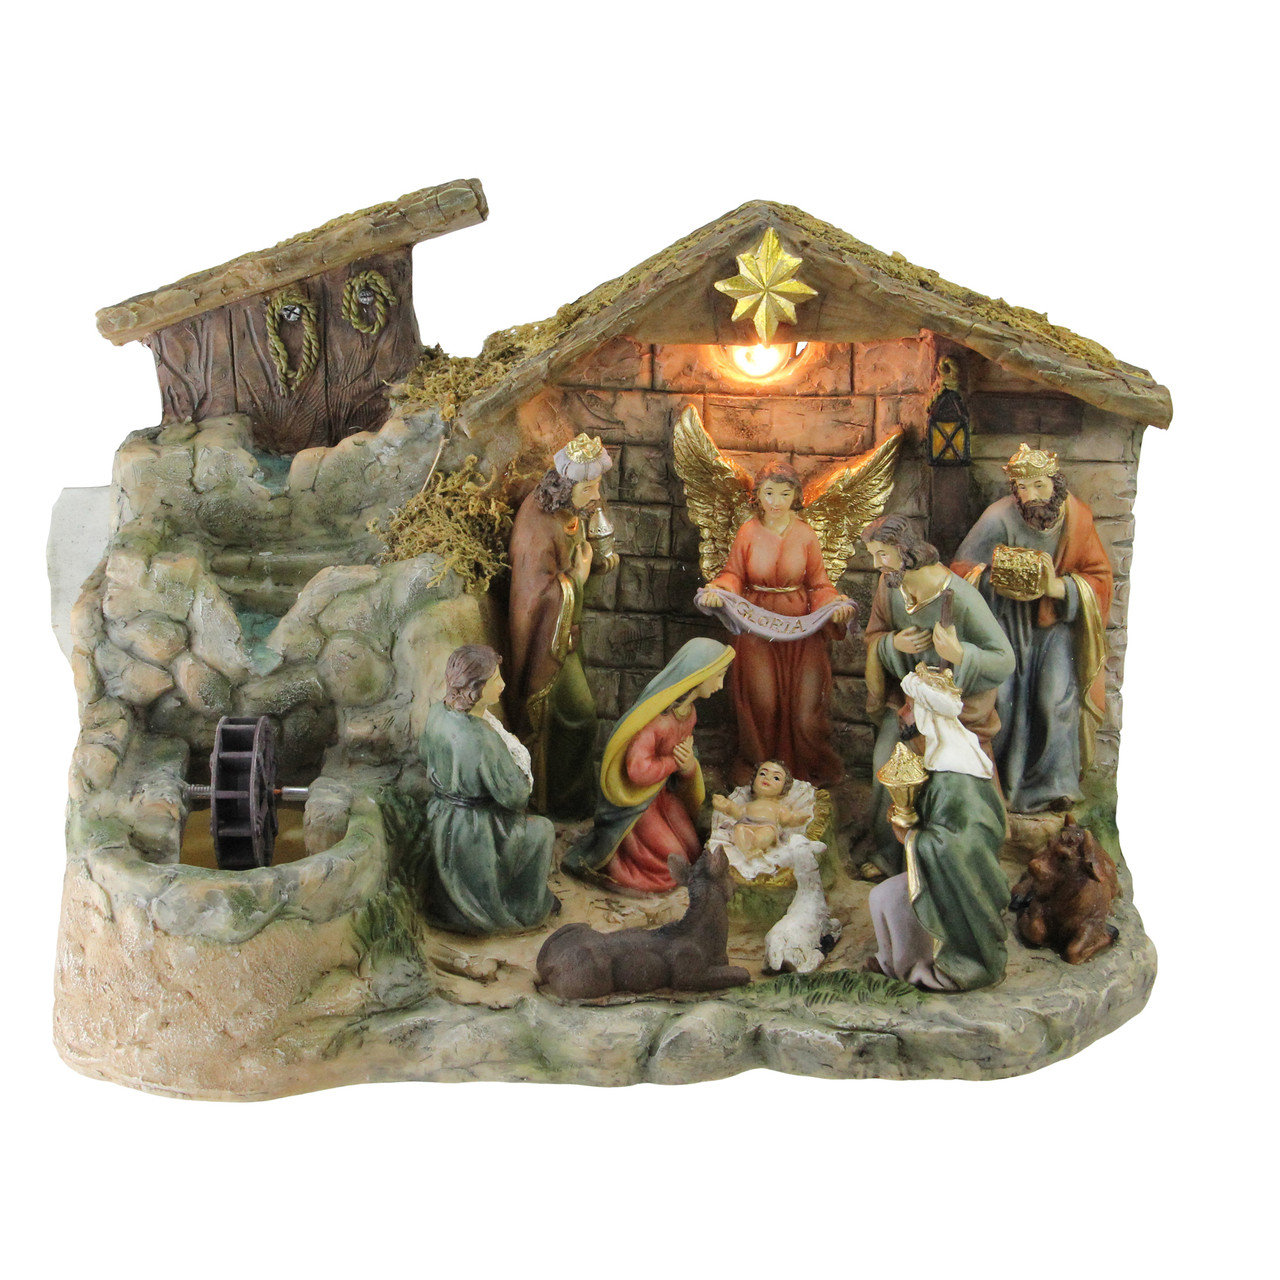 13 Christmas Nativity Scene Indoor Tabletop Water Fountain With Warm White Light